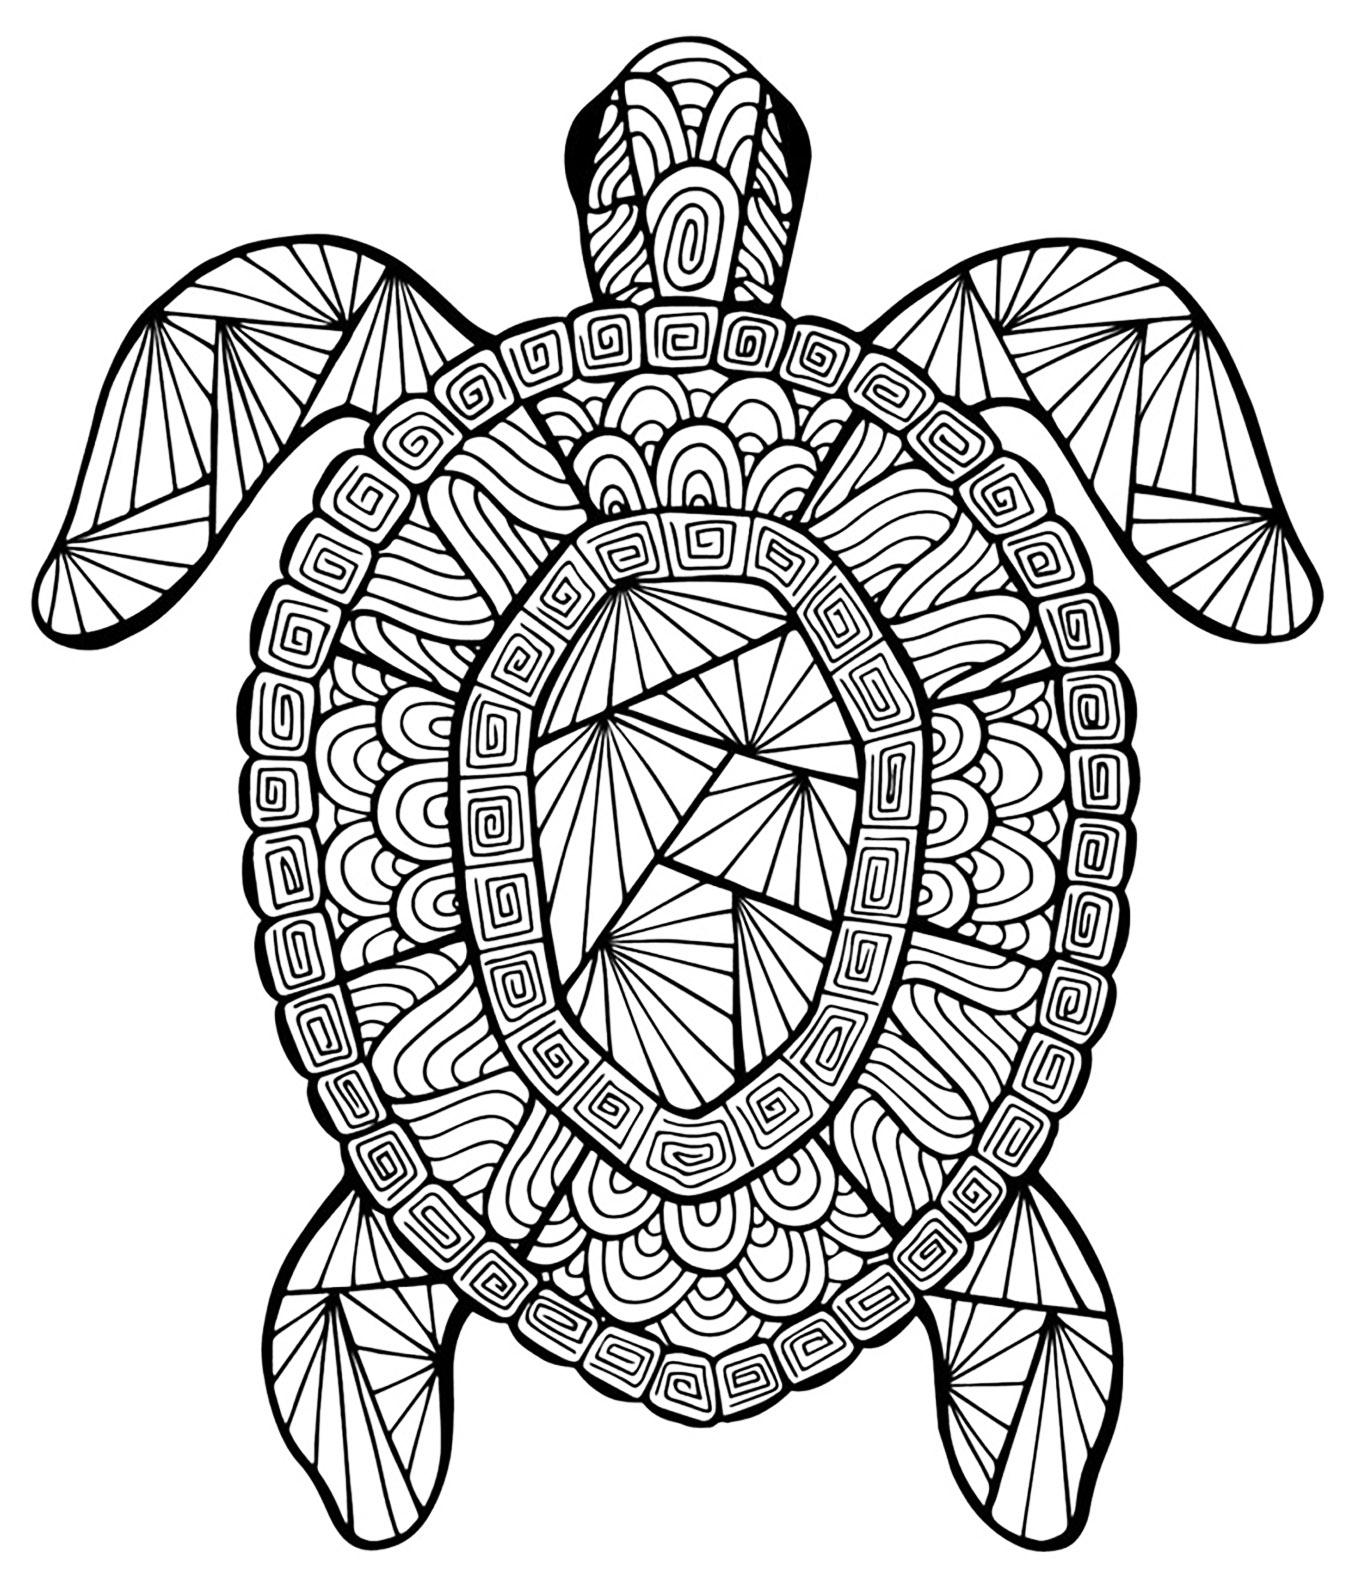 animals drawings to color little monkey coloring page free clip art to animals drawings color